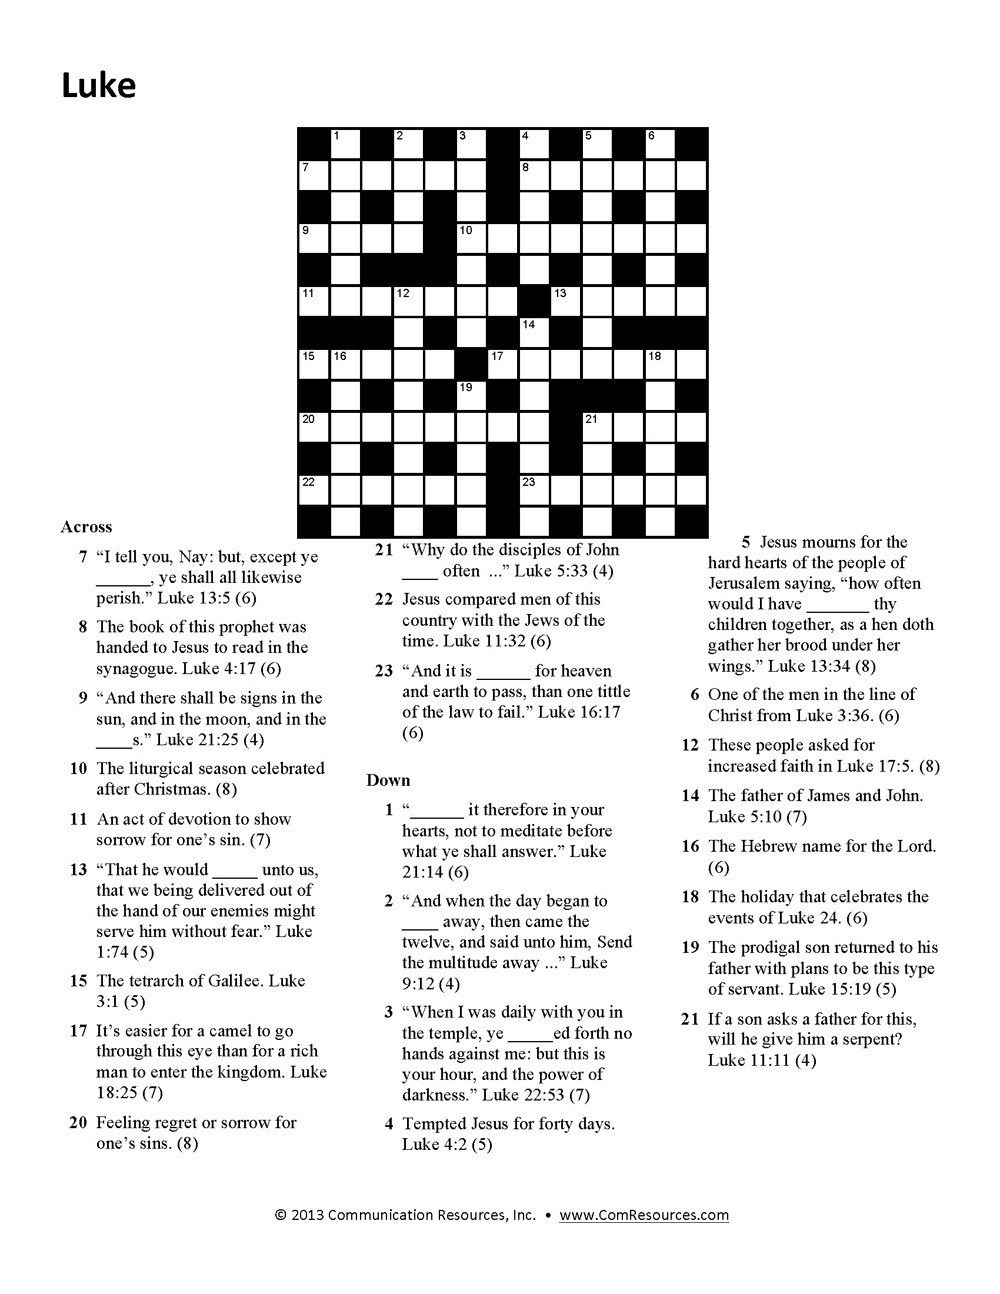 15 Fun Bible Crossword Puzzles | Kittybabylove - Printable Religious Crossword Puzzles